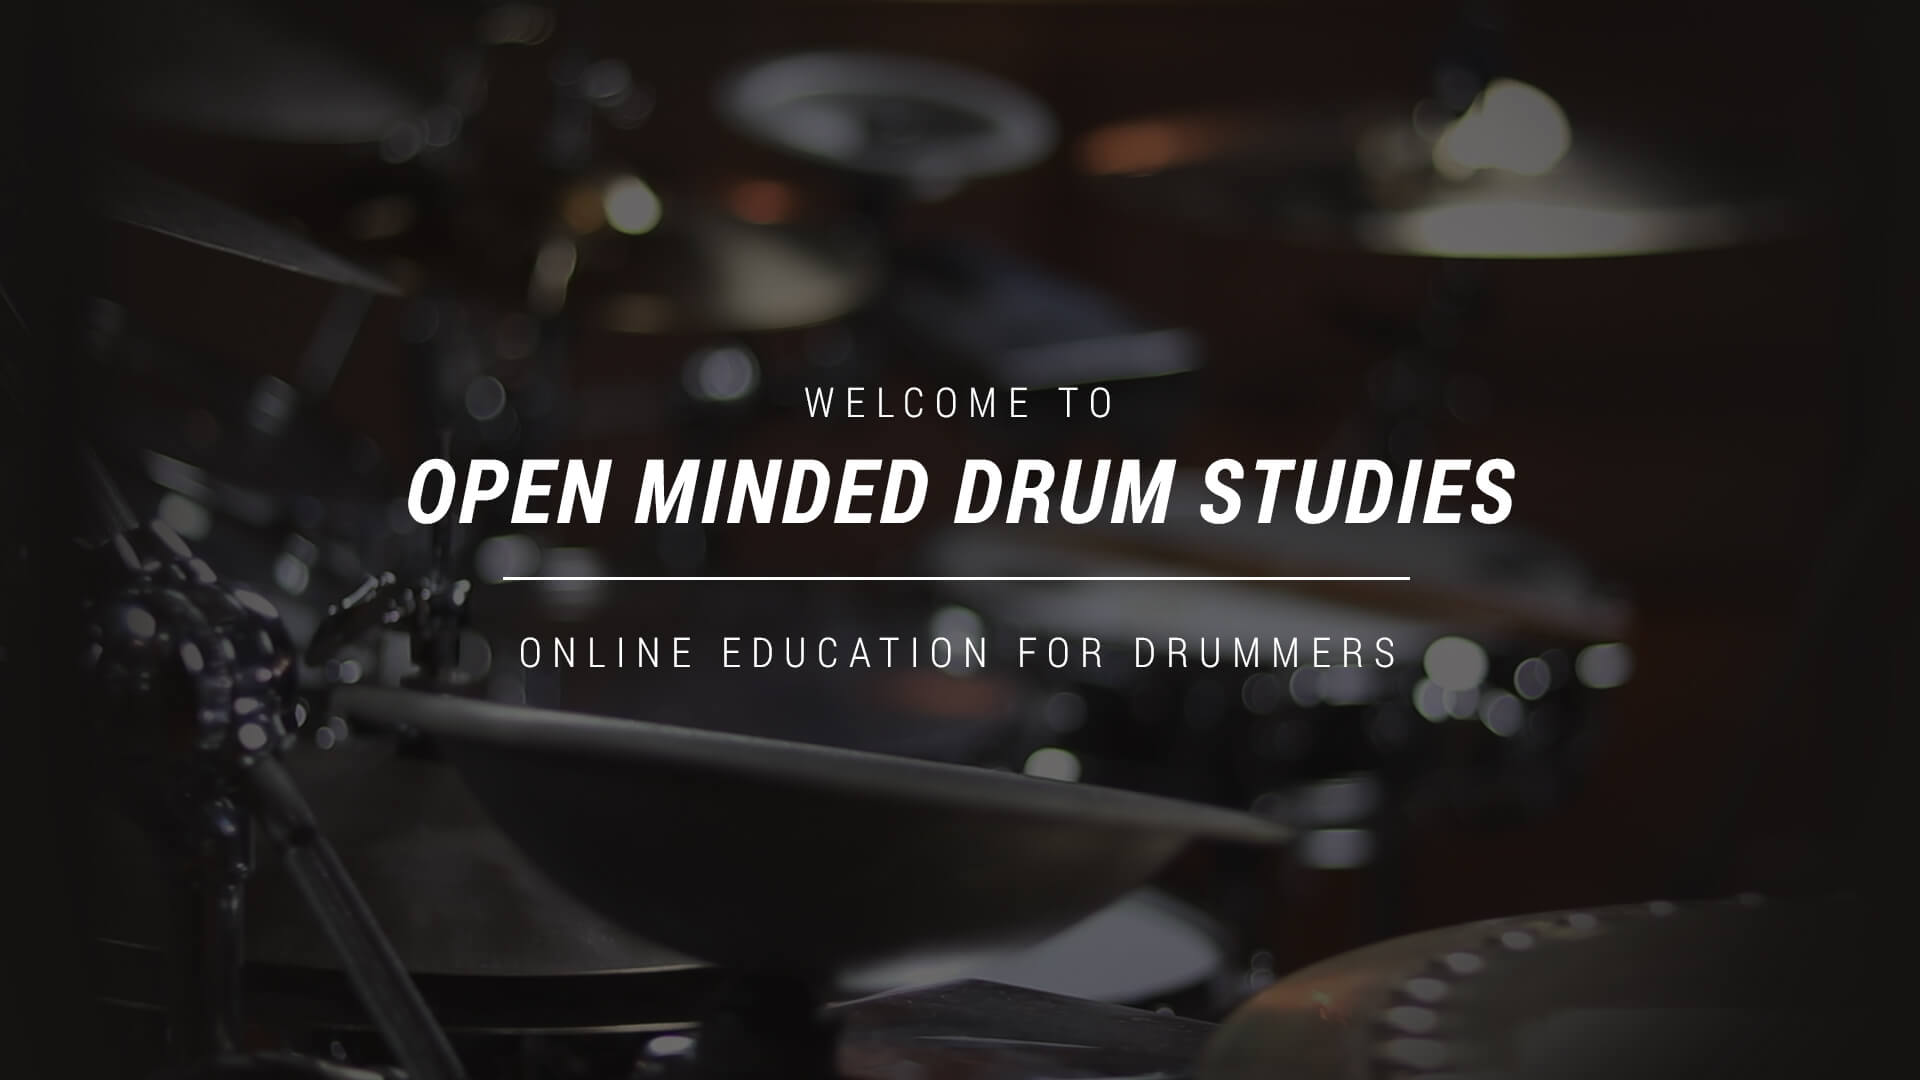 main-page-welcome-to-open-minded-drum-studies